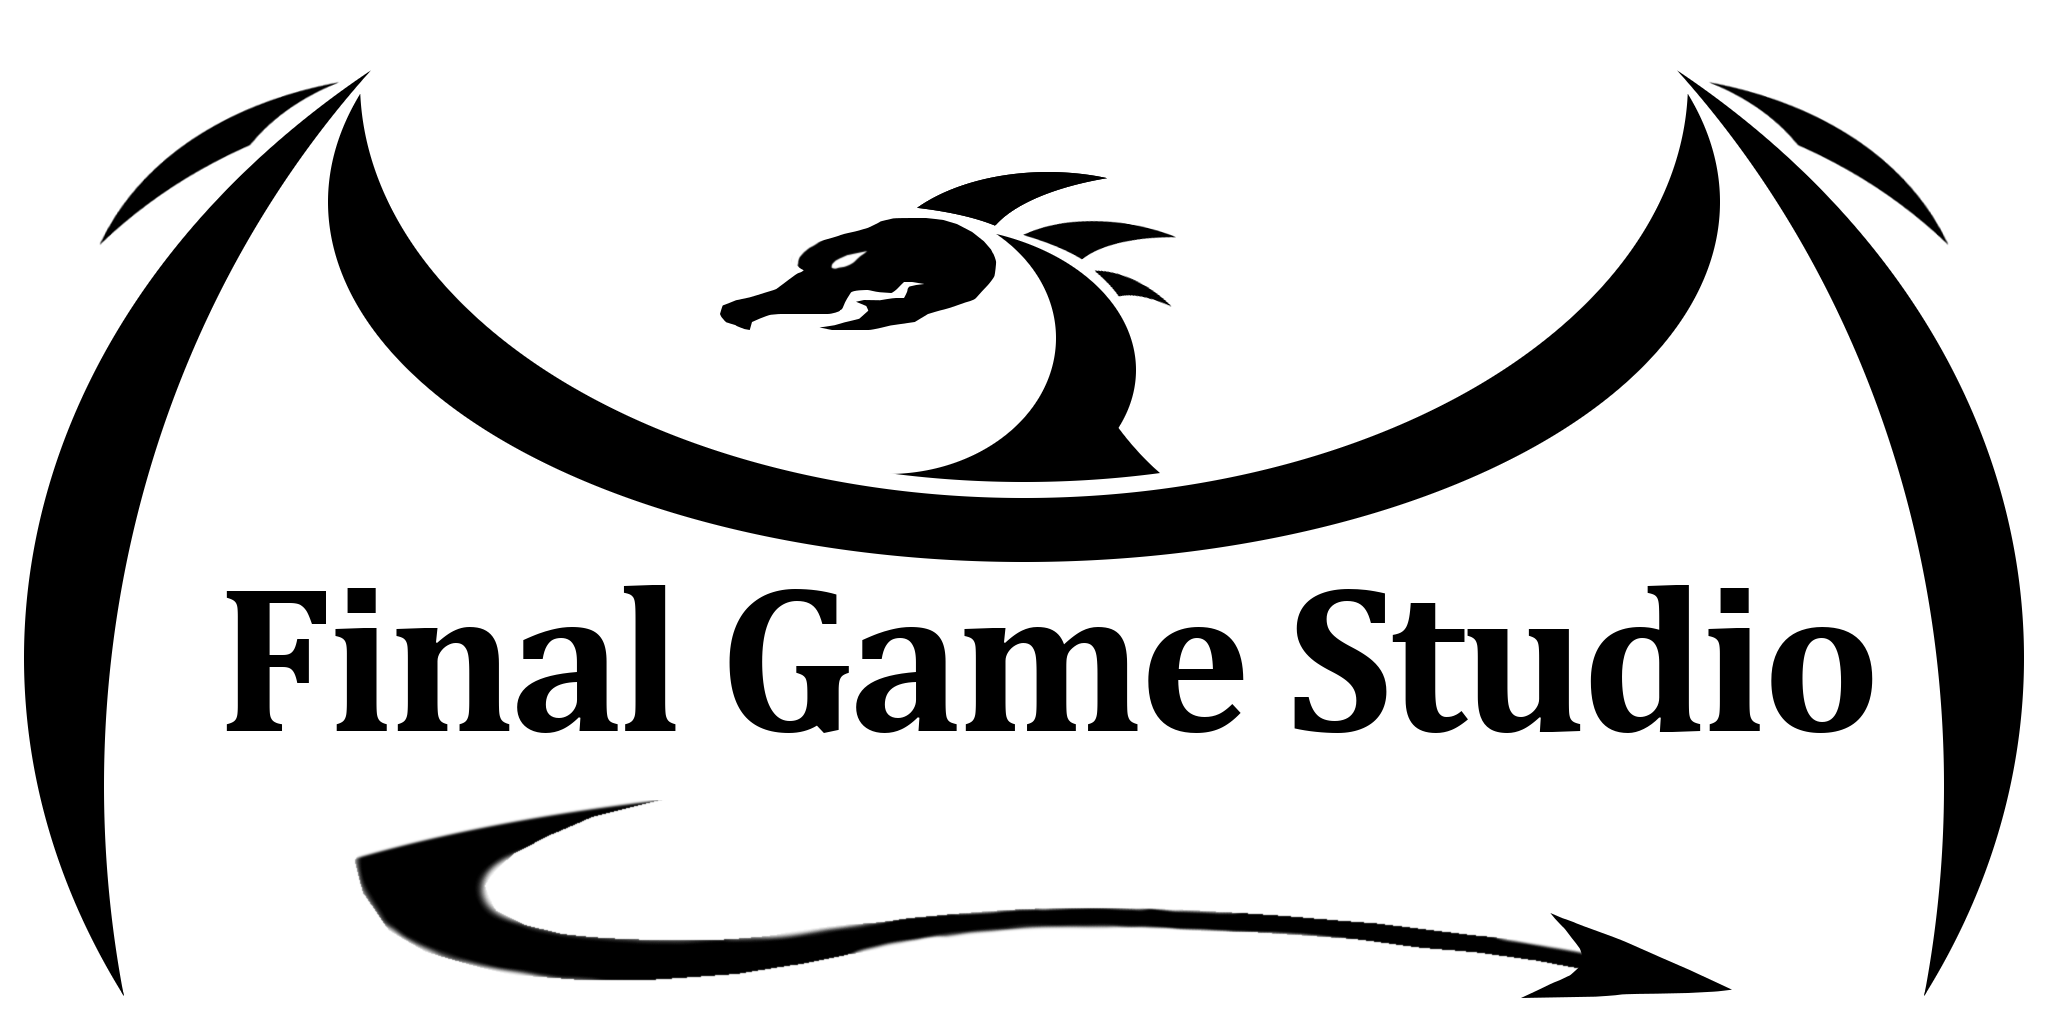 Final Game Studio Logo - Black and White